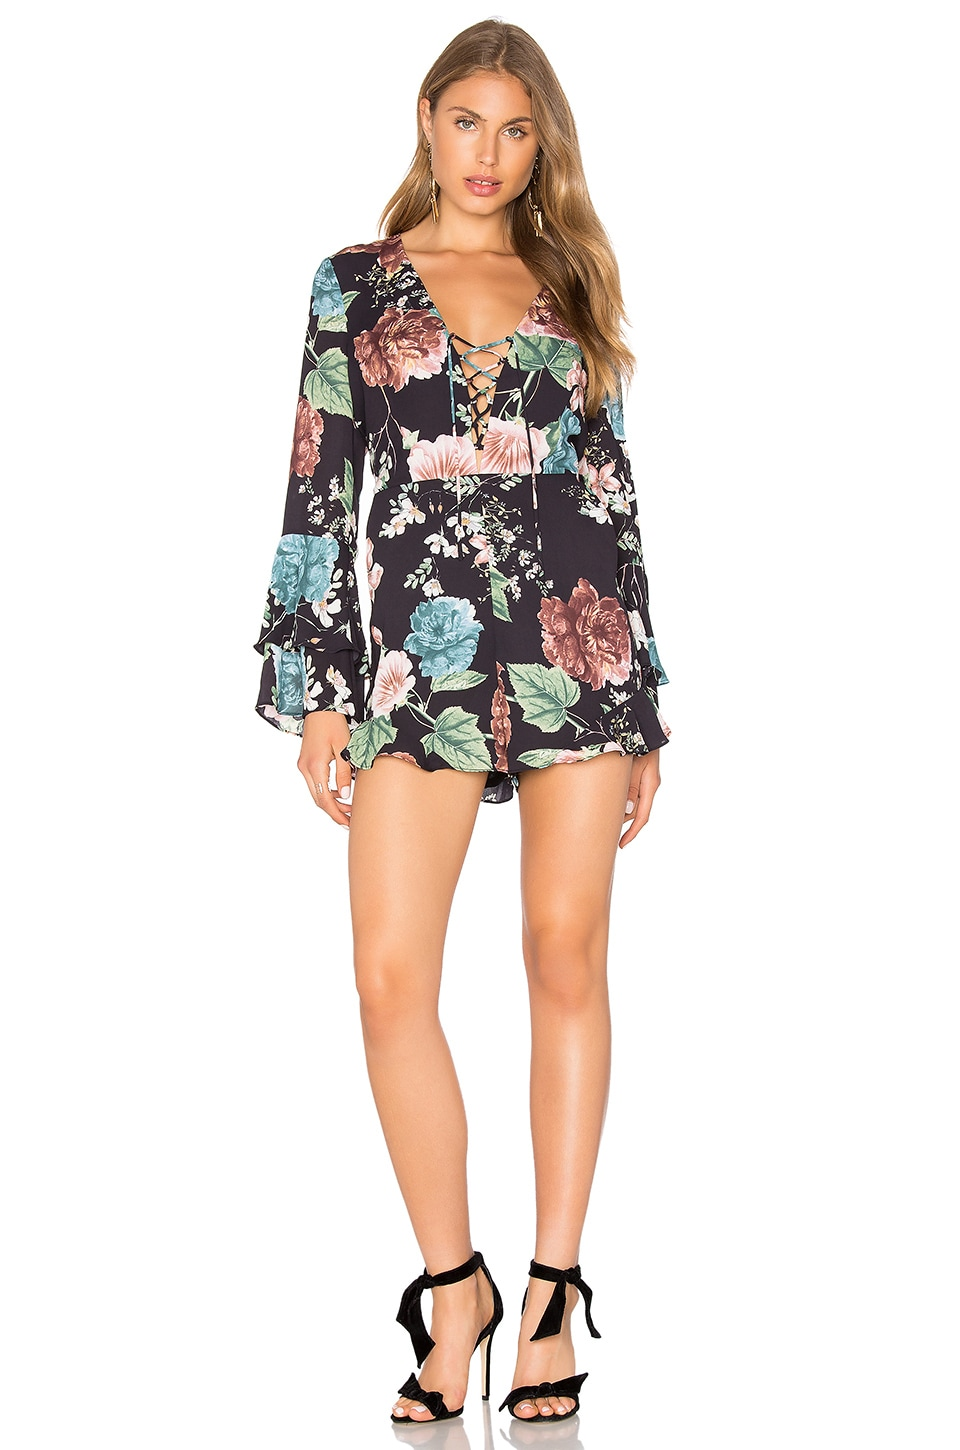 Bardot Amelia Playsuit in Harmony Floral